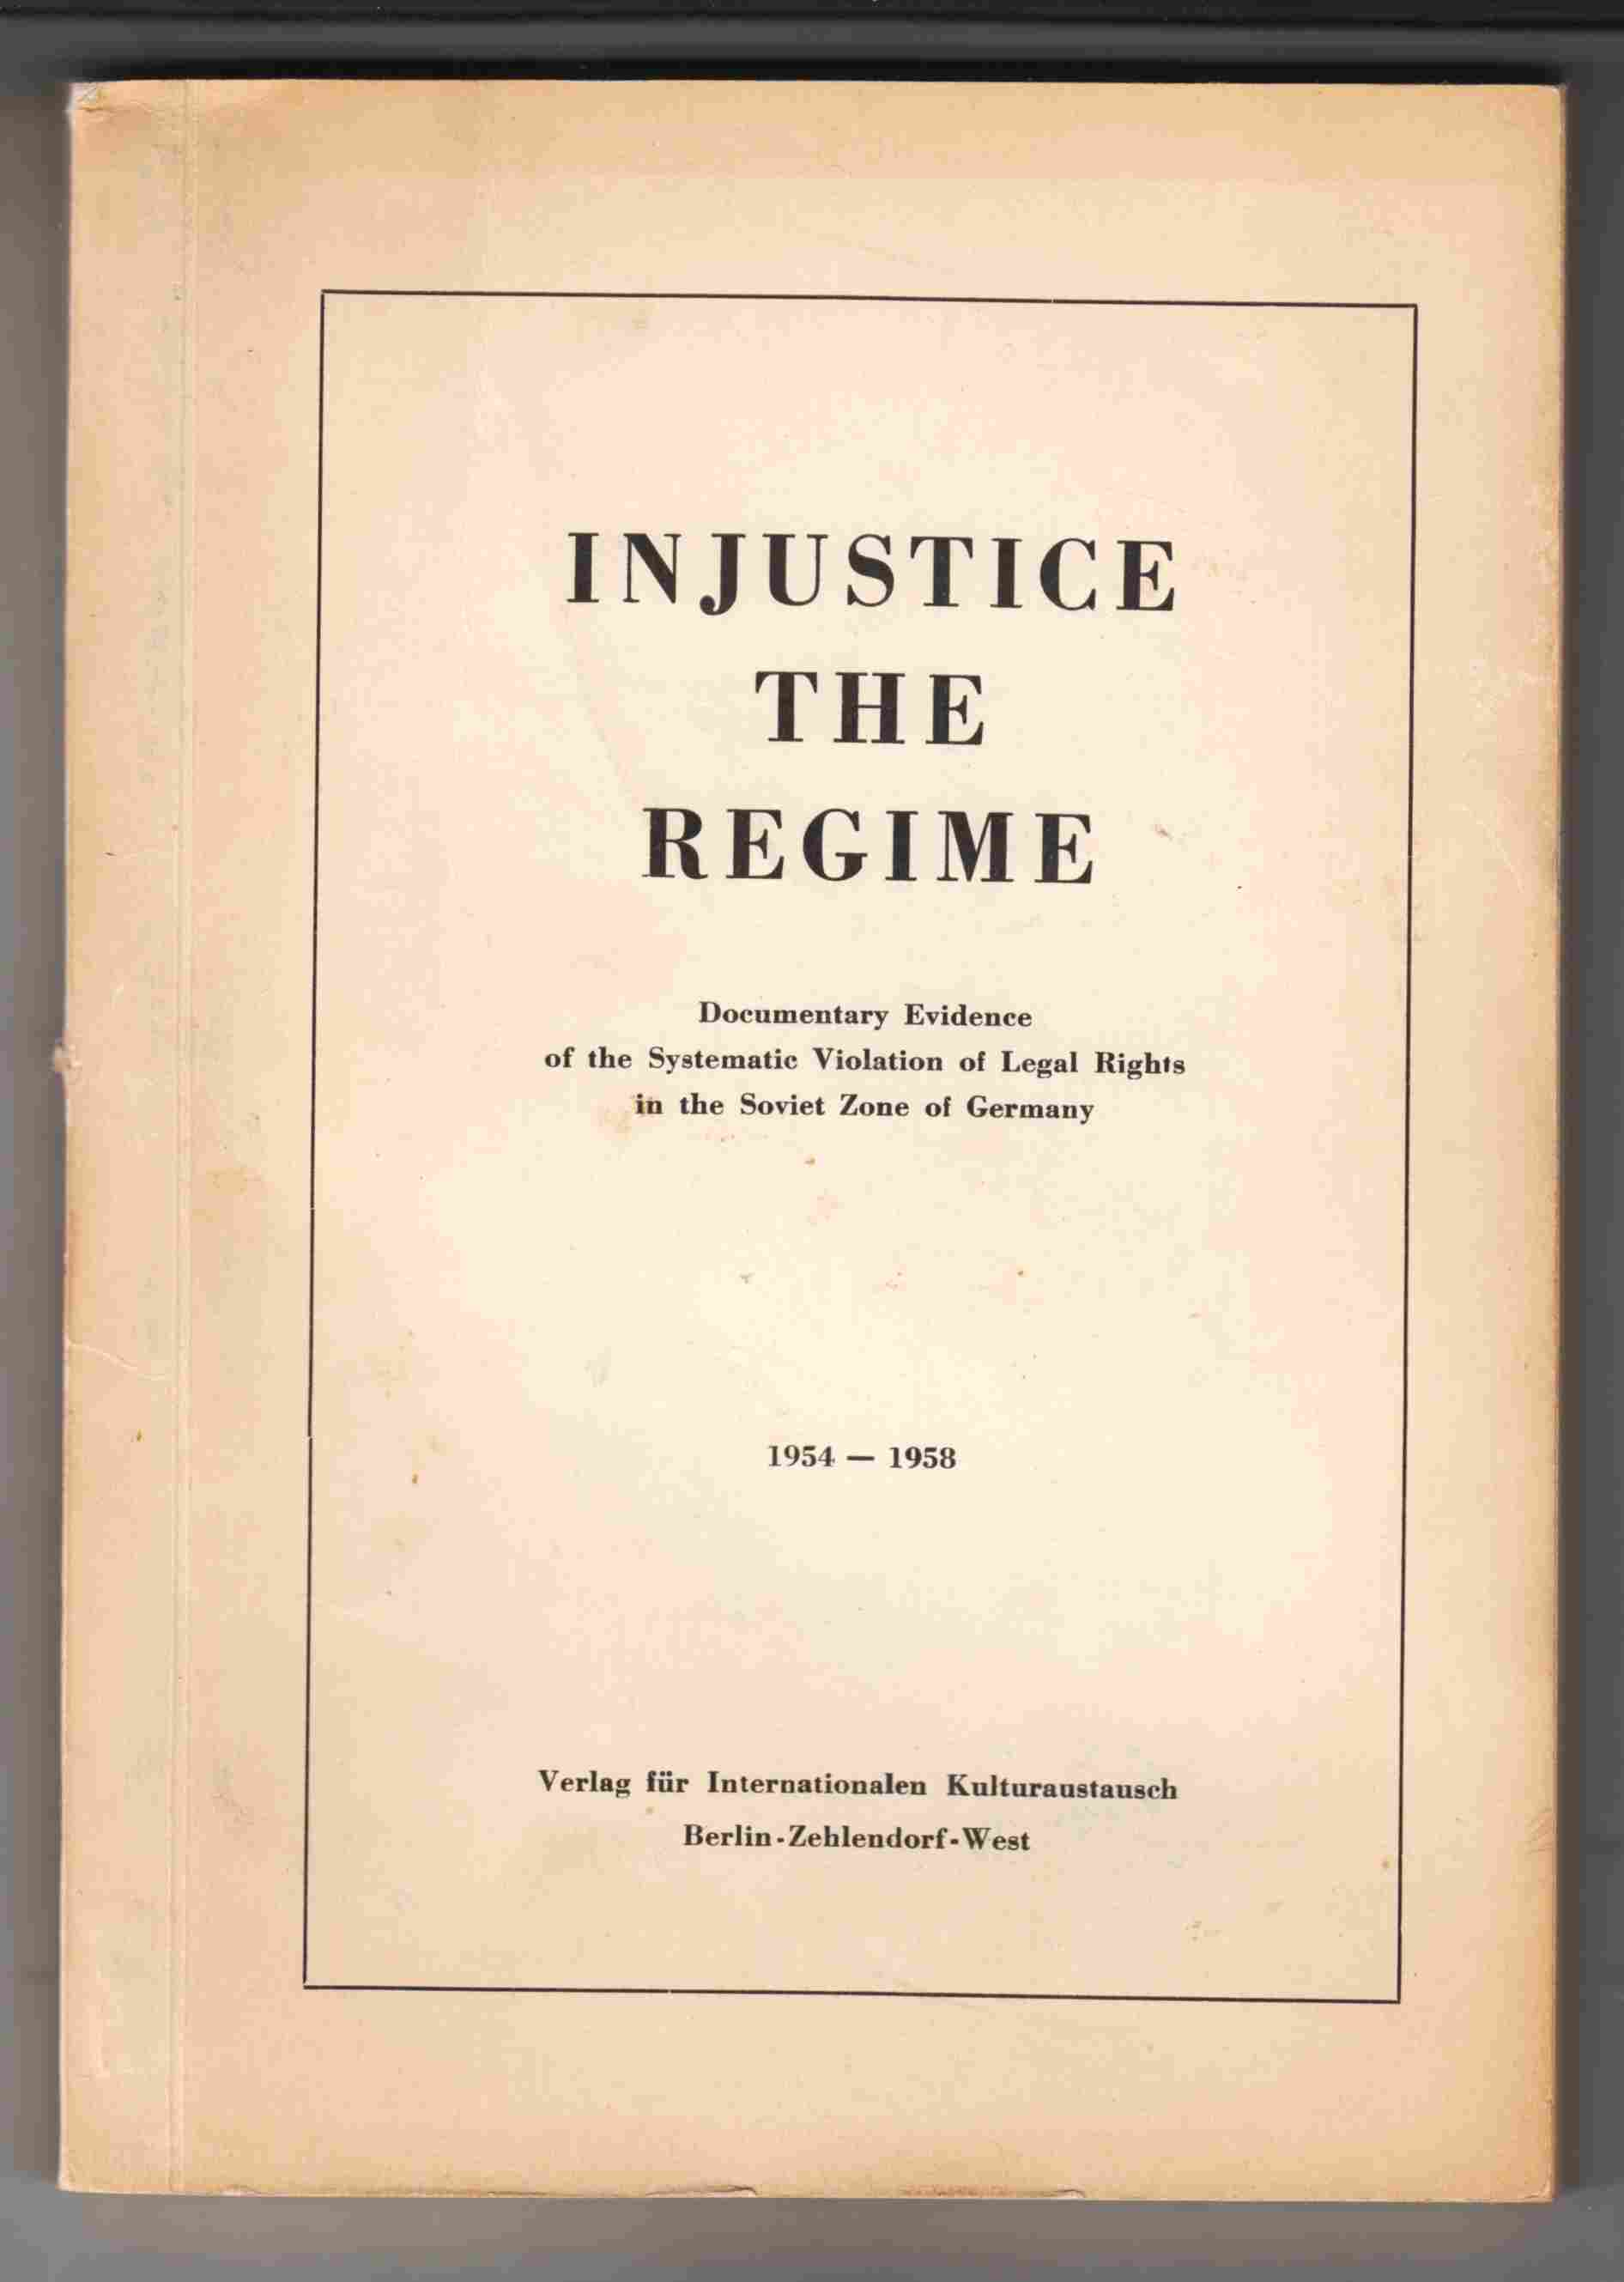 Image for Injustice the Regime Documentary Evidence of the Systematic Violation of Legal Rights in the Soviet Zone of Germany 1954-1958